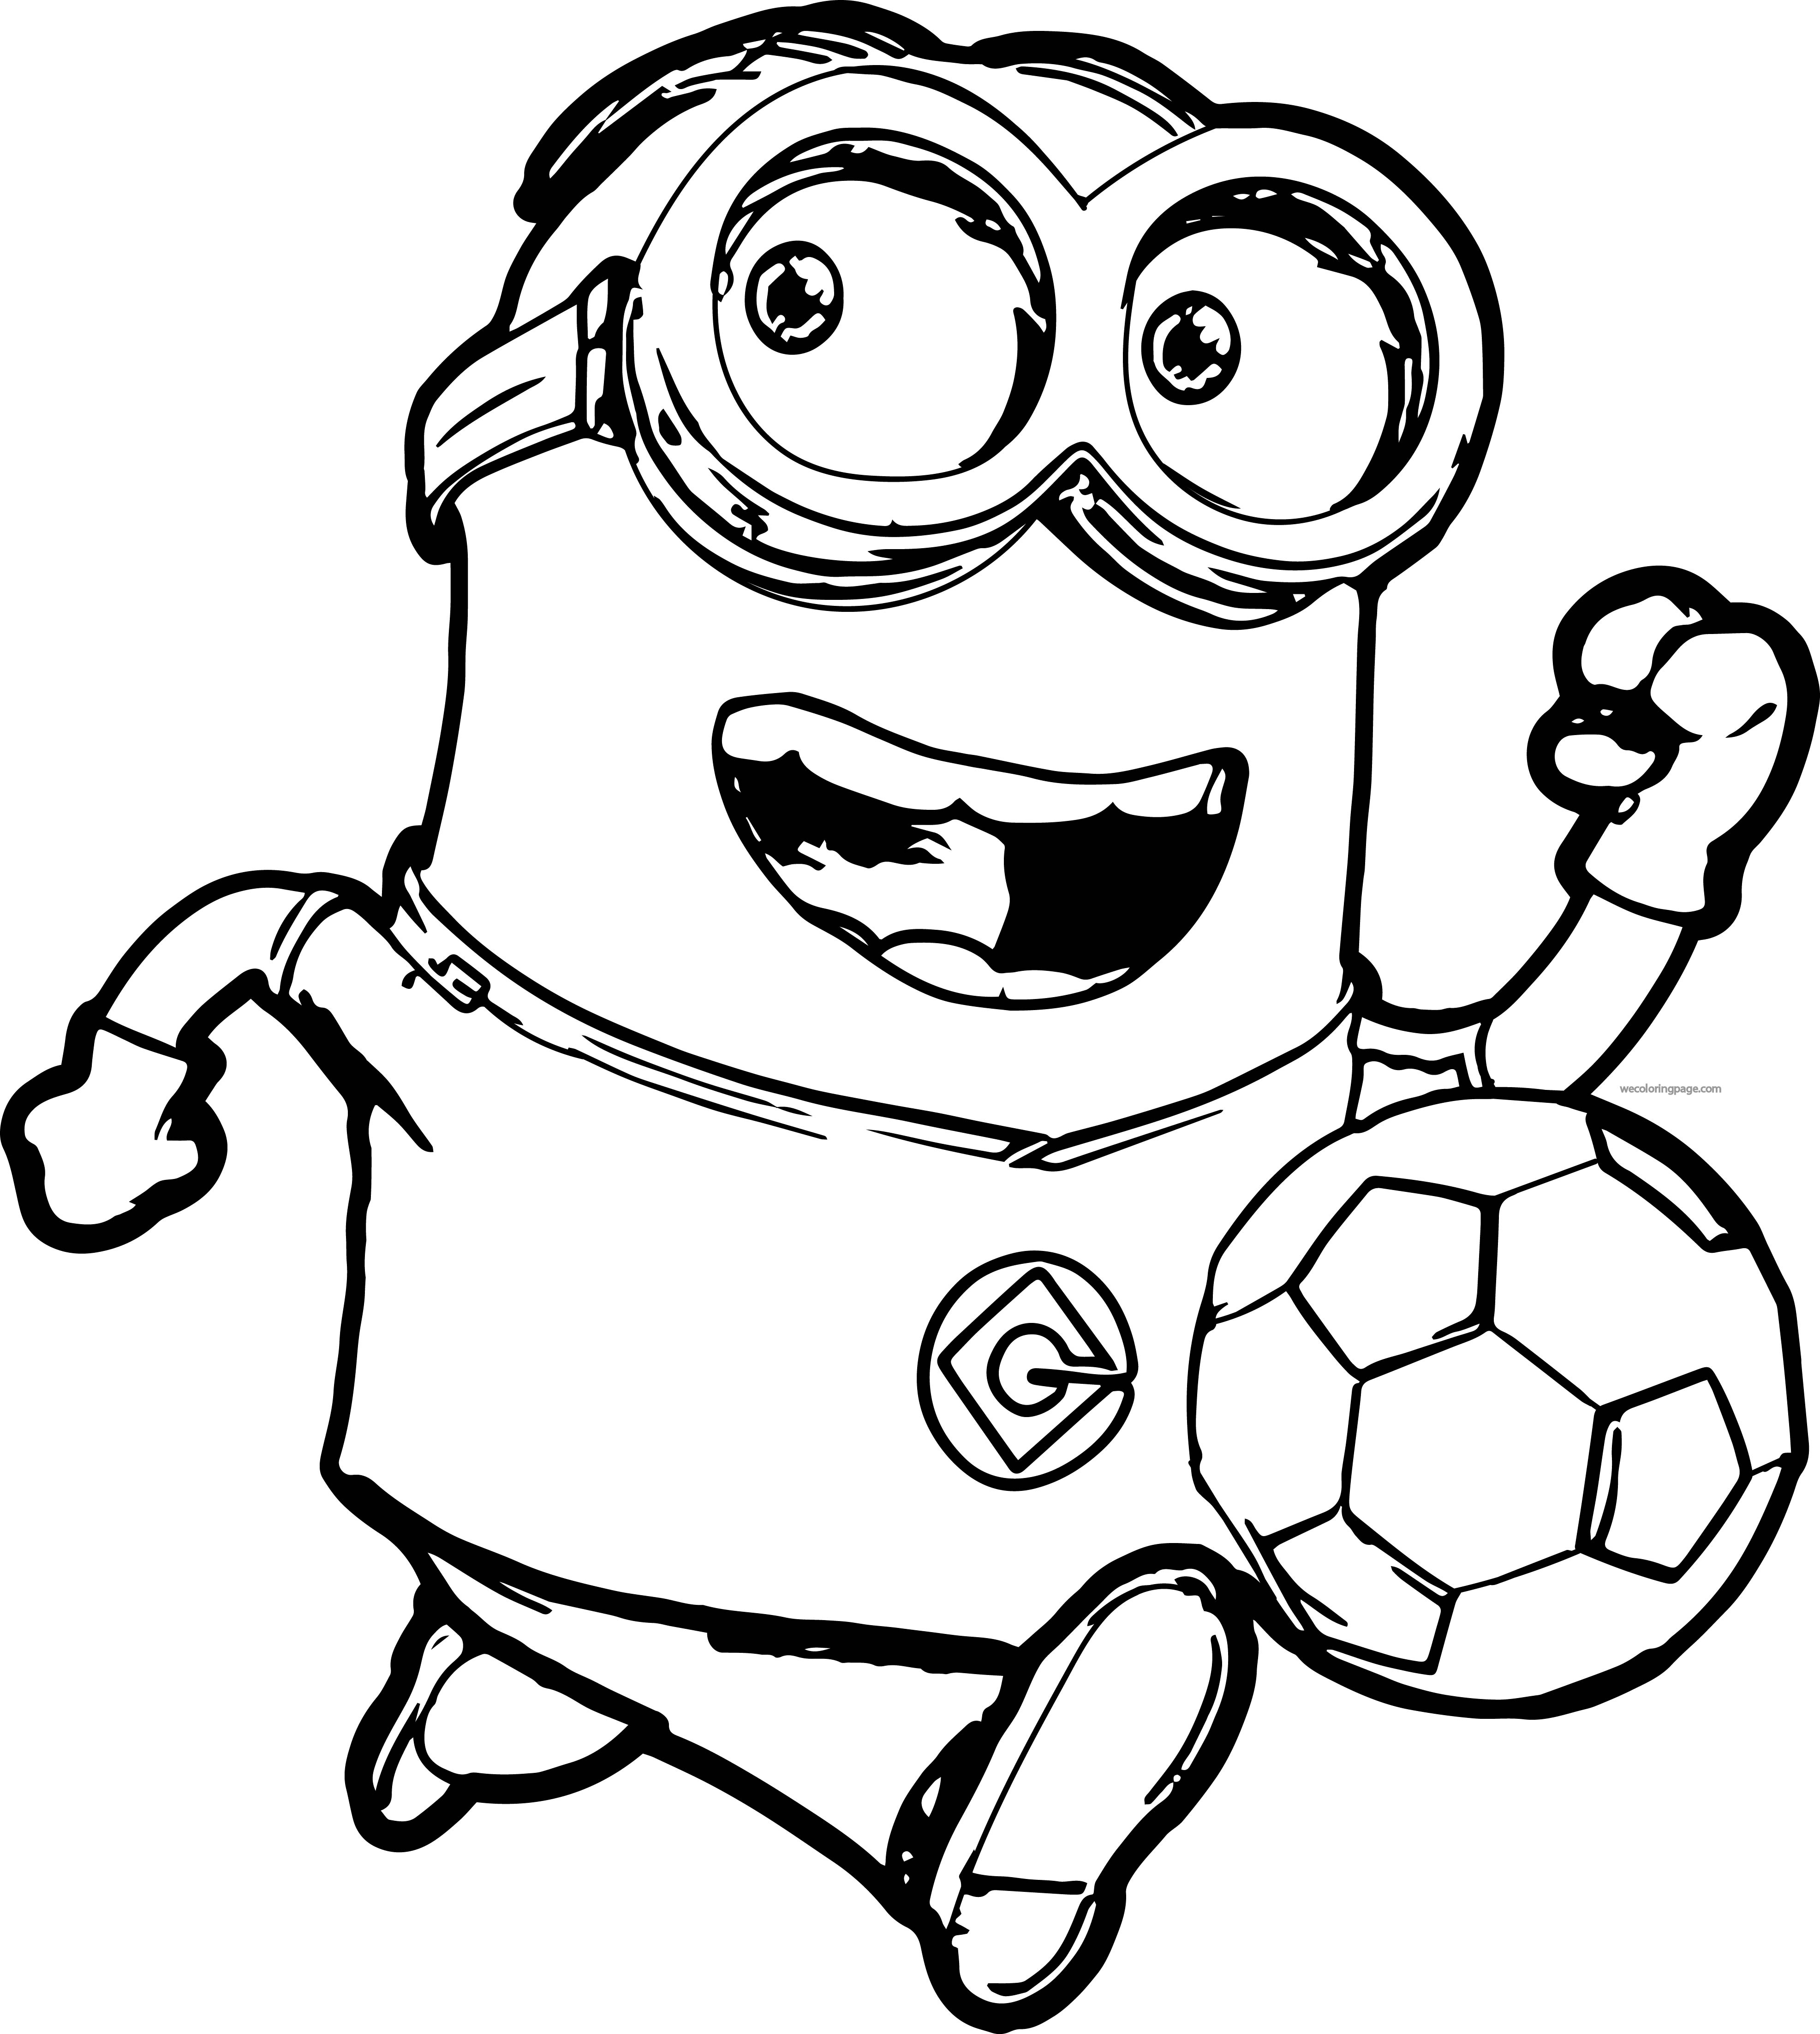 coloring pages for kids easy easy coloring pages to download and print for free pages easy for coloring kids